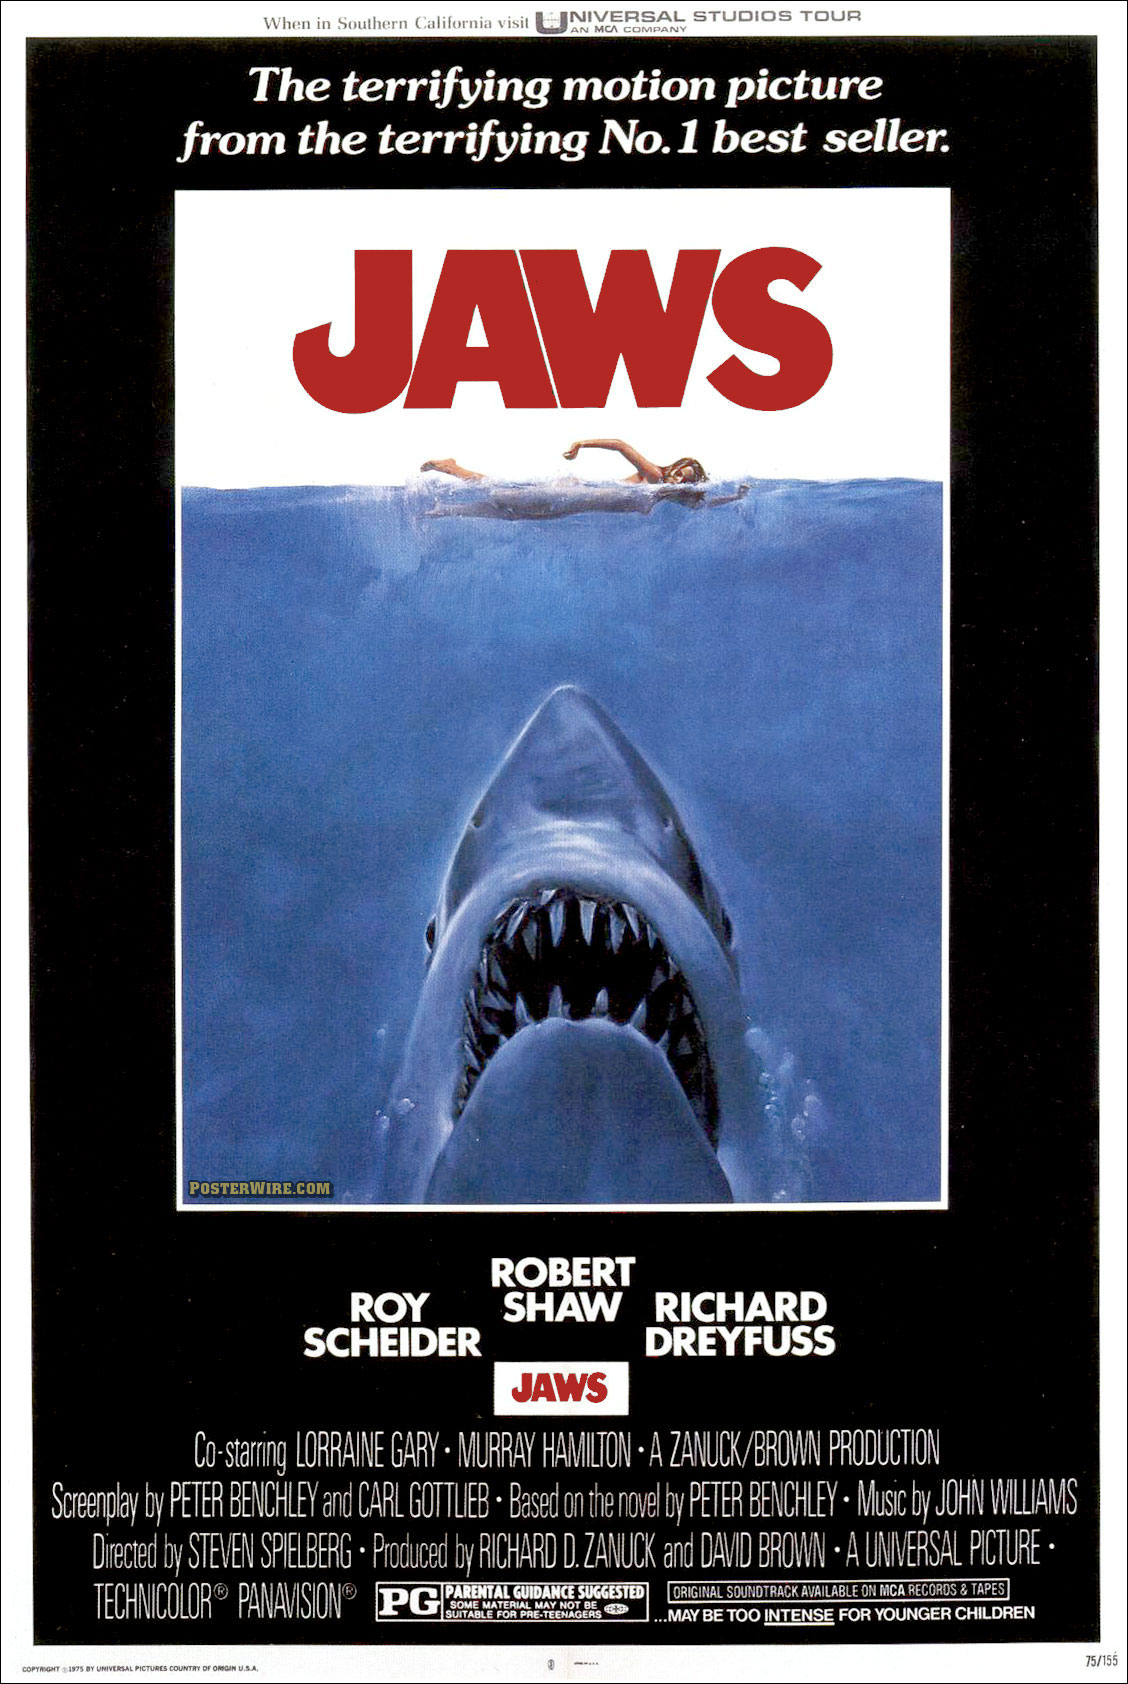 1 - Jaws